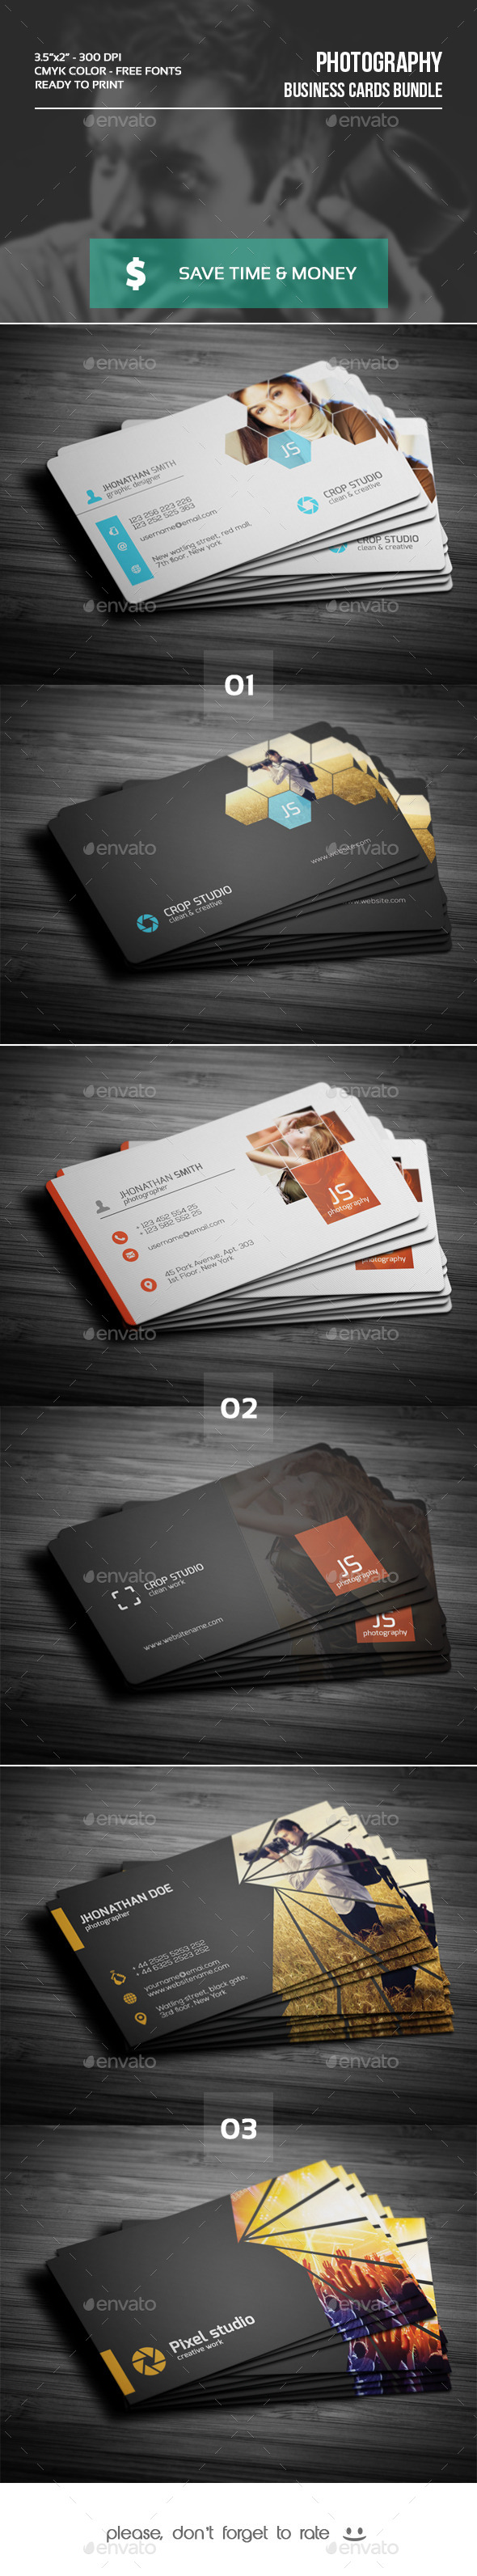 GraphicRiver Bundle Photography Business Cards 9720113